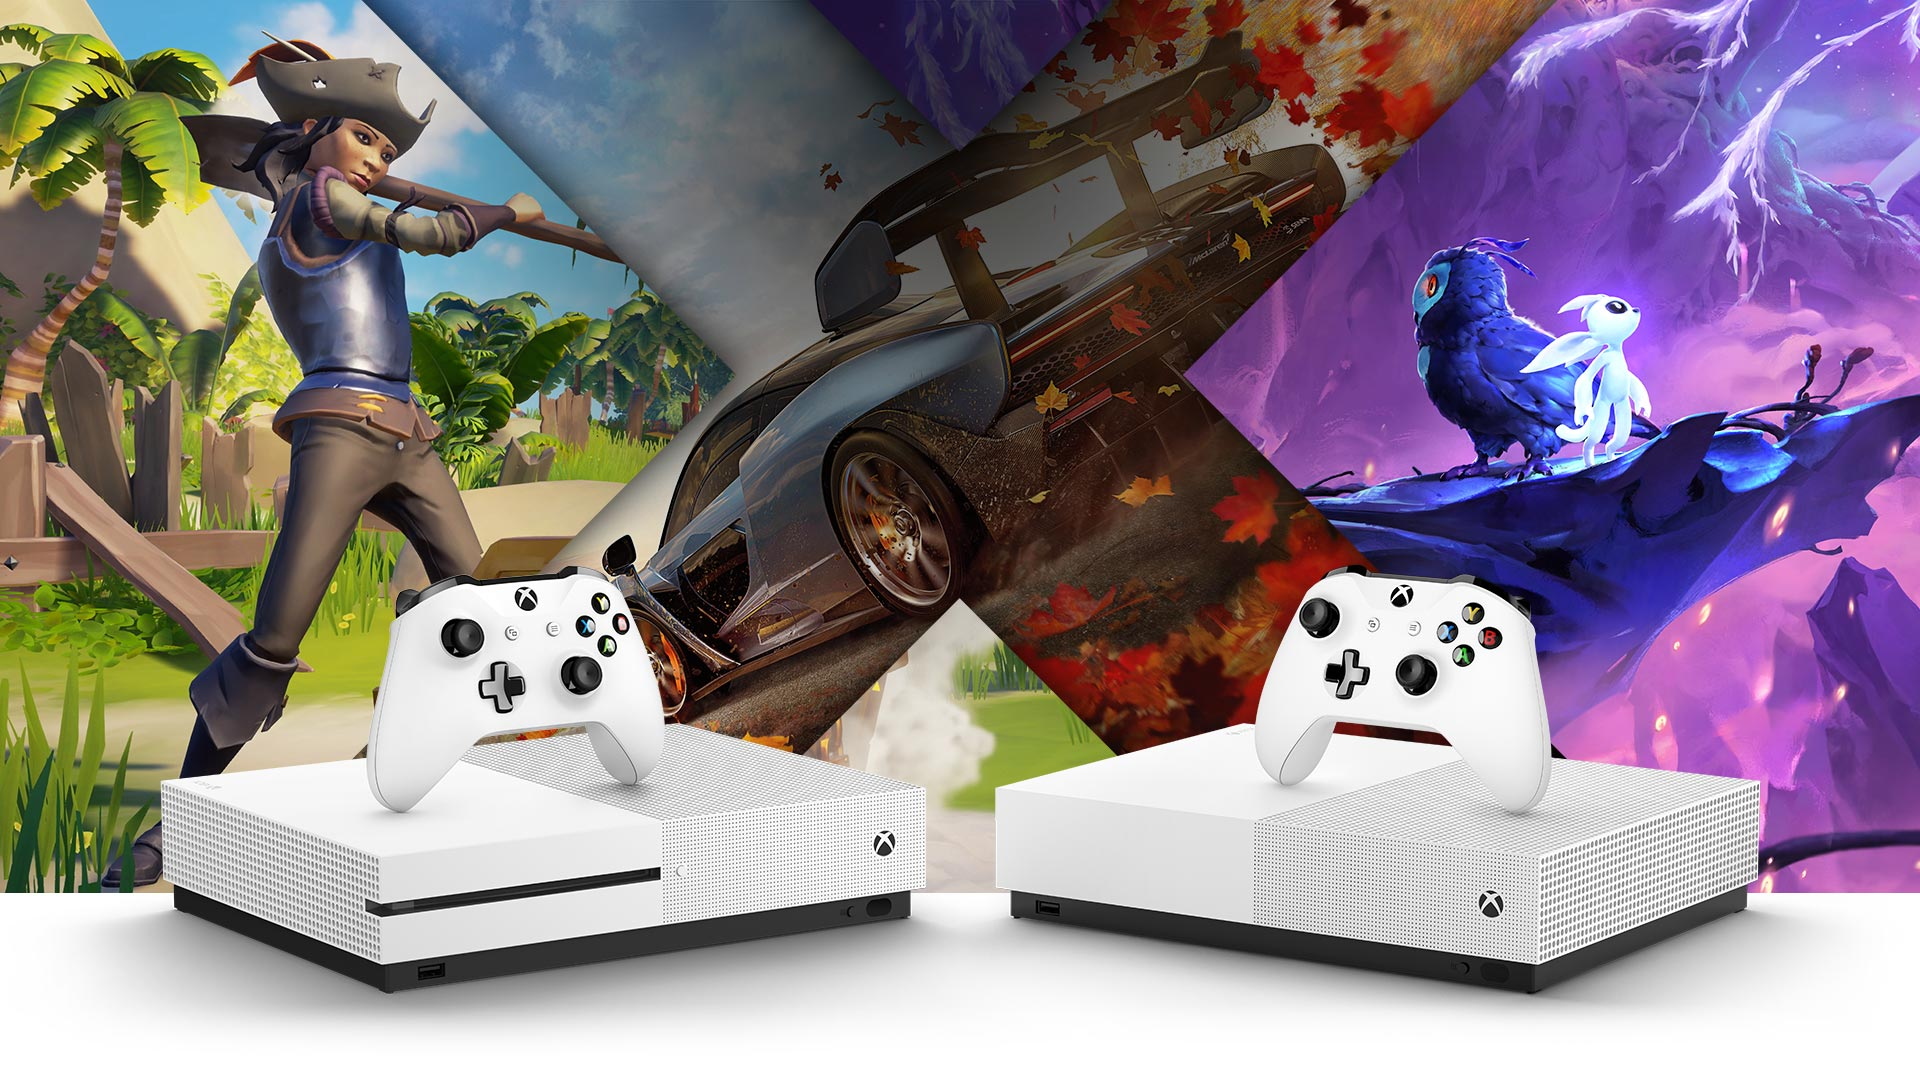 Sea of Thieves, Forza Horizon 4, Ori and the Will of Wisps çizimiyle çevrili Xbox One S ve Xbox One S All Digital Edition'ın önden görünümü